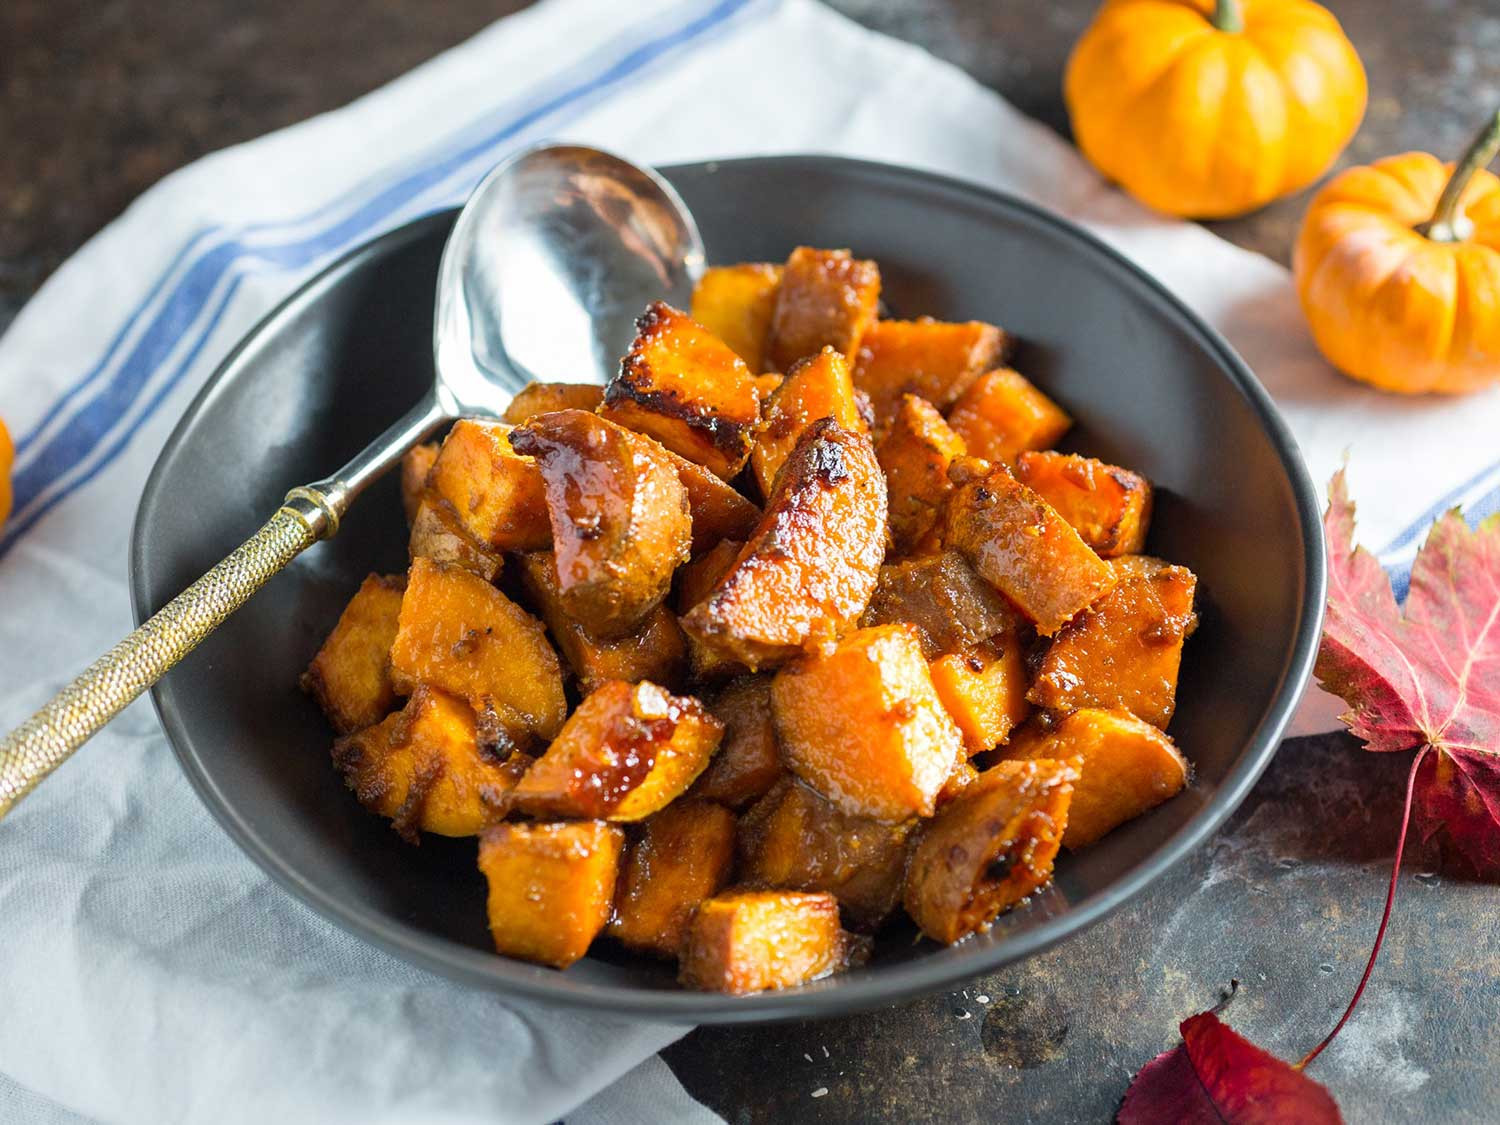 Roasted Sweet Potato Recipe  Roasted Sweet Potatoes With Miso Butter and Maple Recipe